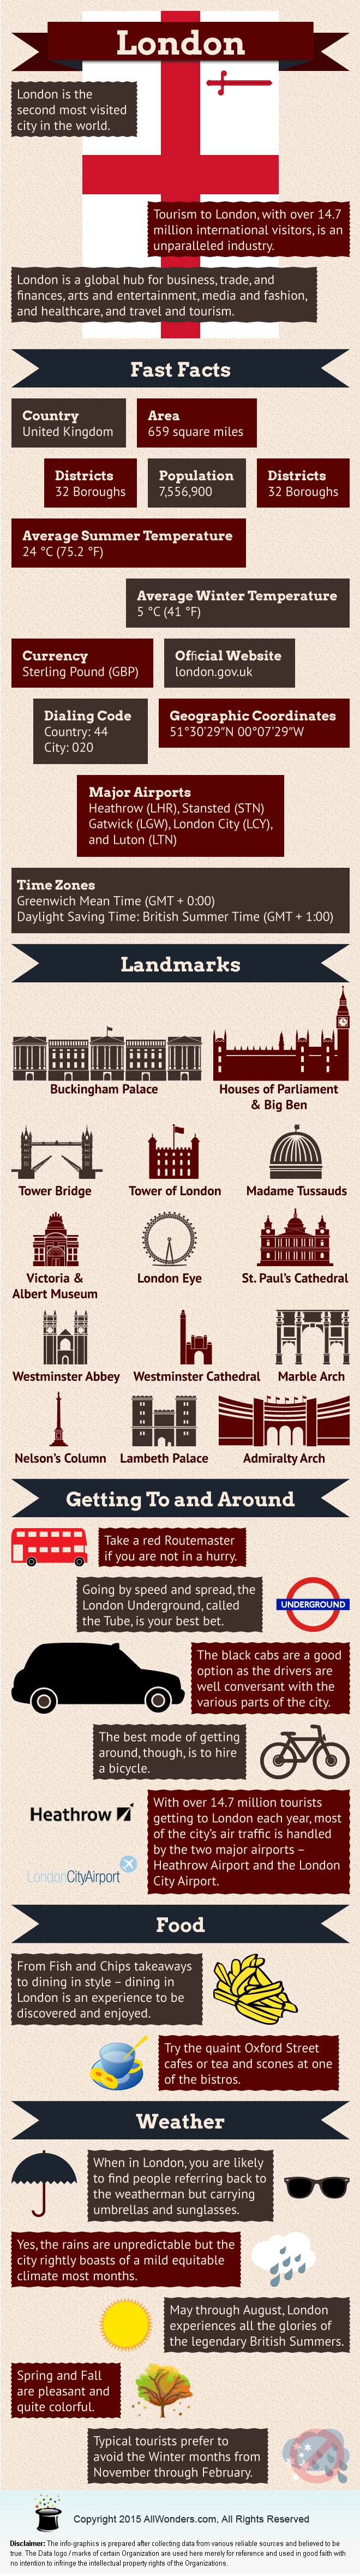 London Travel Infographic